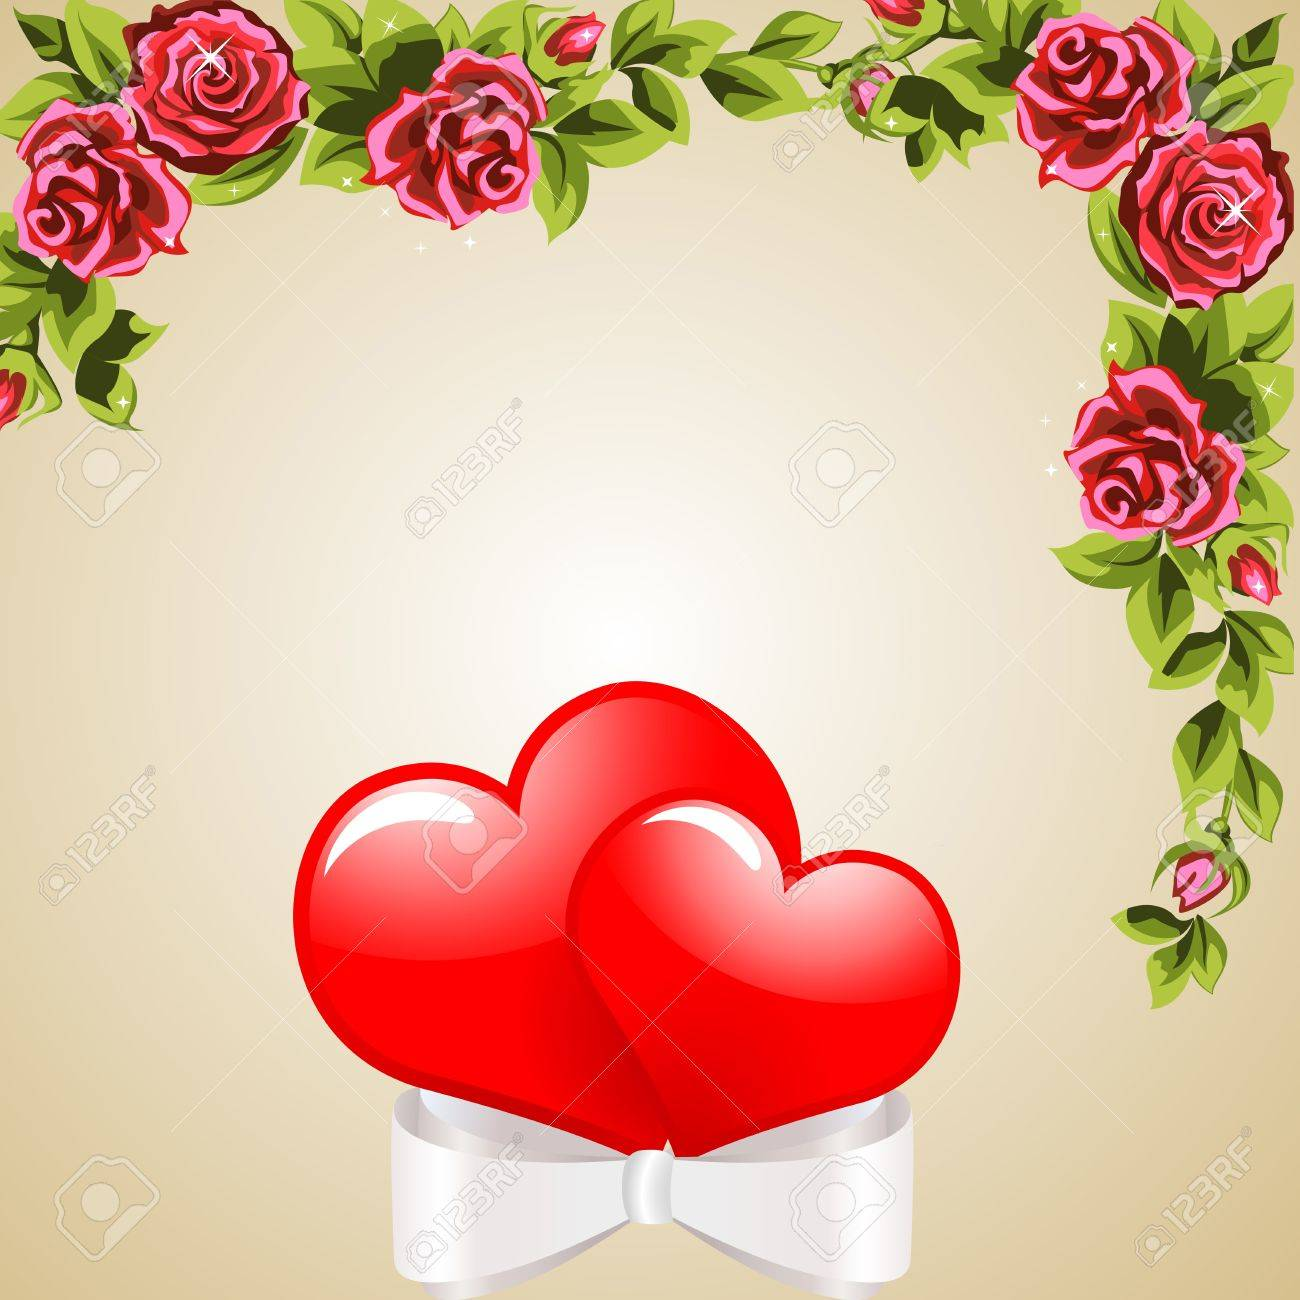 Two heart-related band  The wreath of roses  The background Stock Vector - 12497550